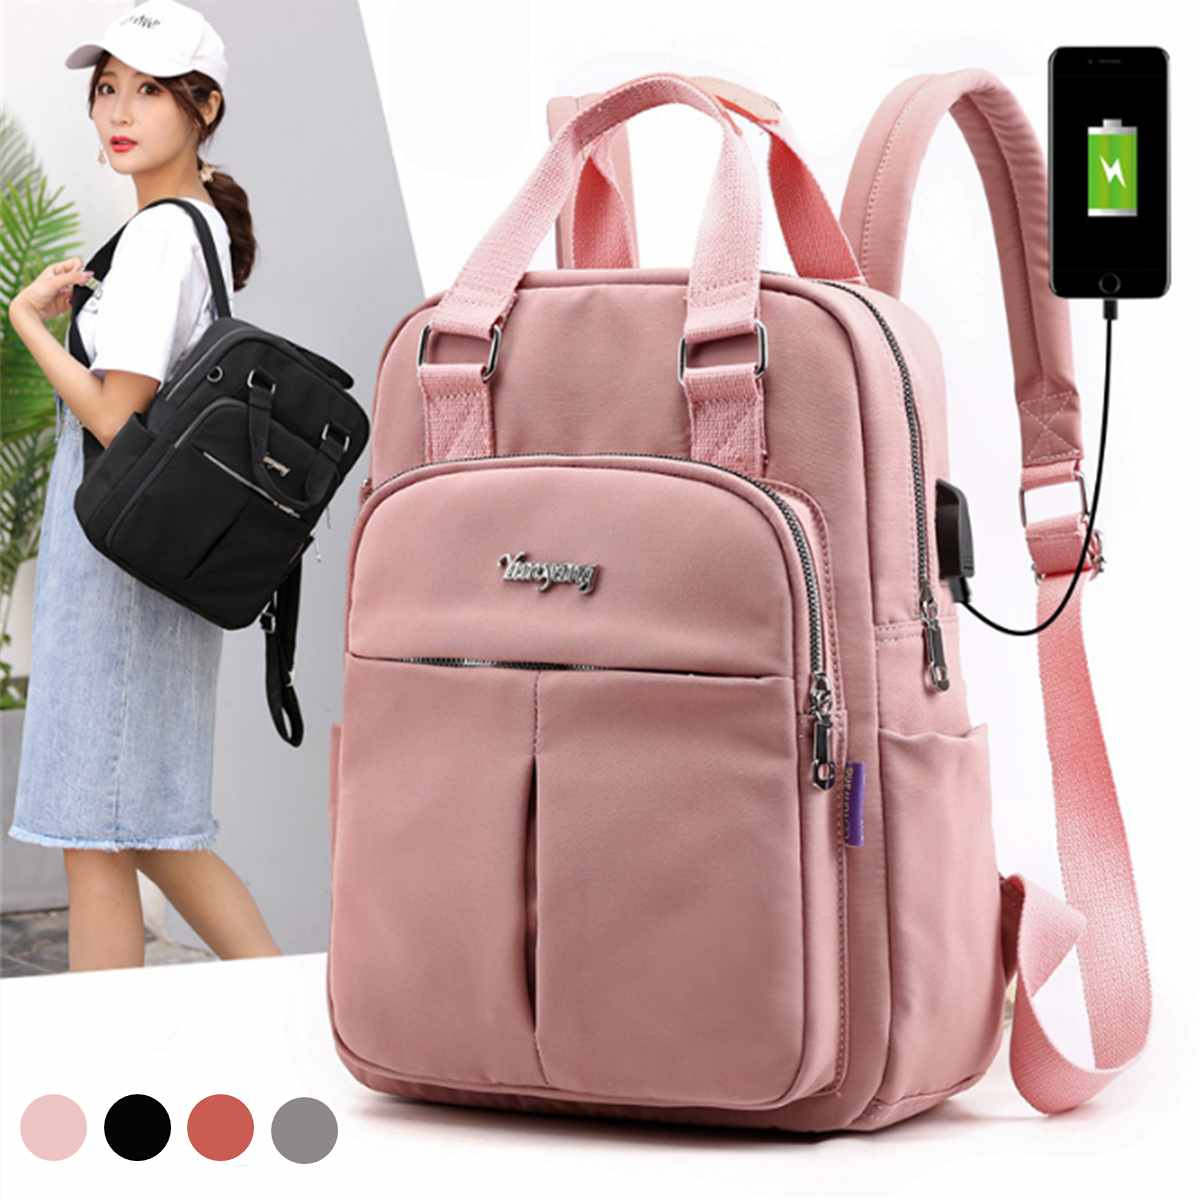 Women Nylon School Backpacks Anti Theft USB Charge Backpack Waterproof Bagpack School Bags For Teenage Girls Travel Bag New